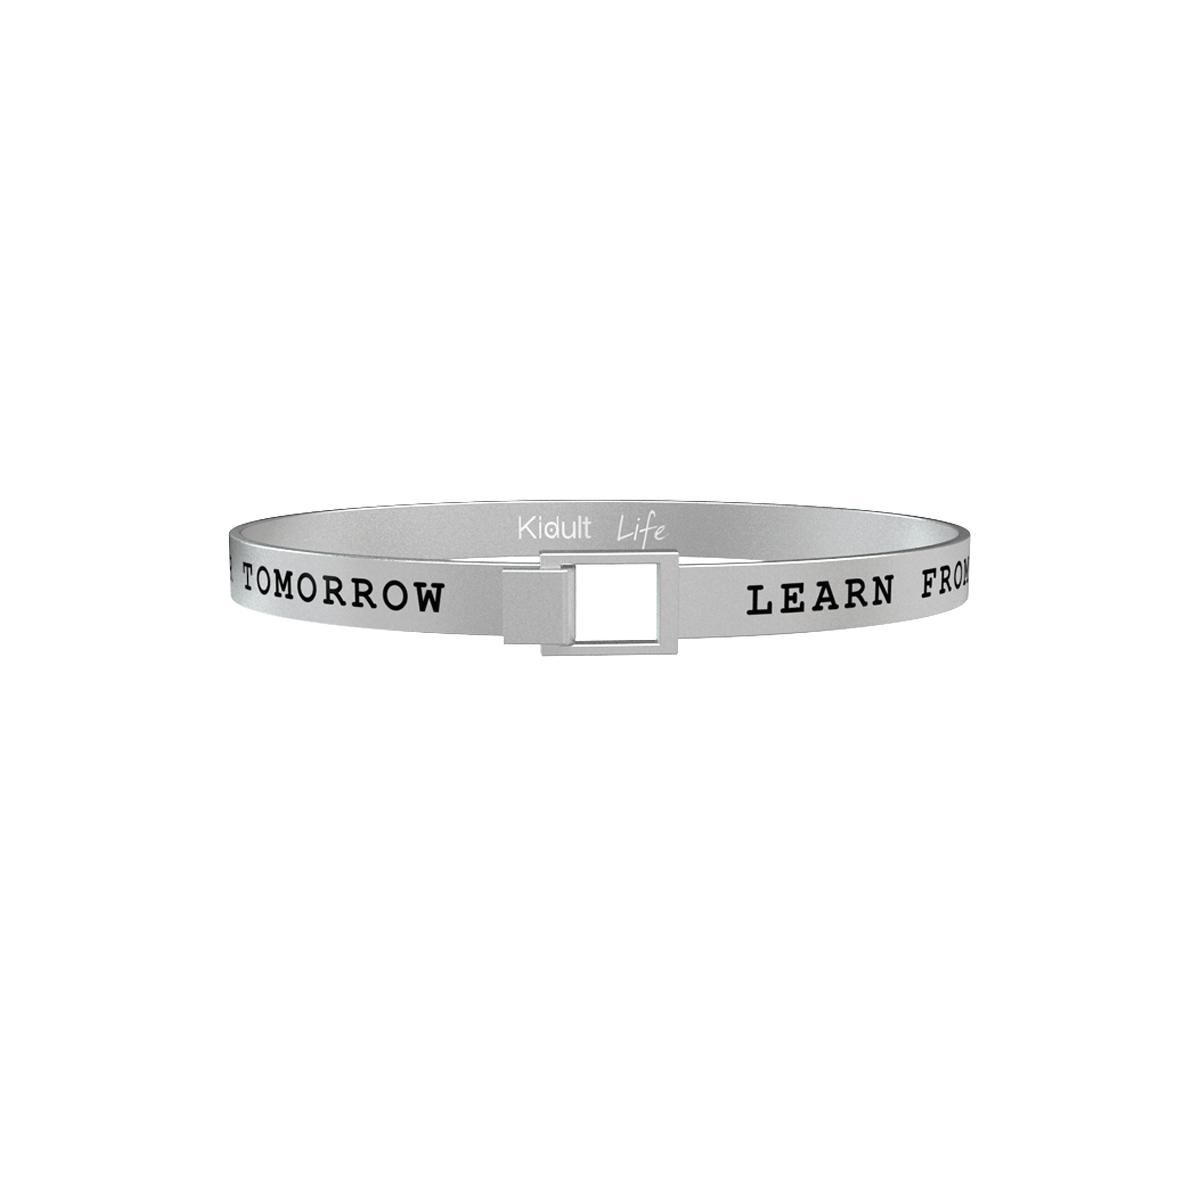 Bracciale KIDULT uomo acciaio 316L 731512 learm from yesterday